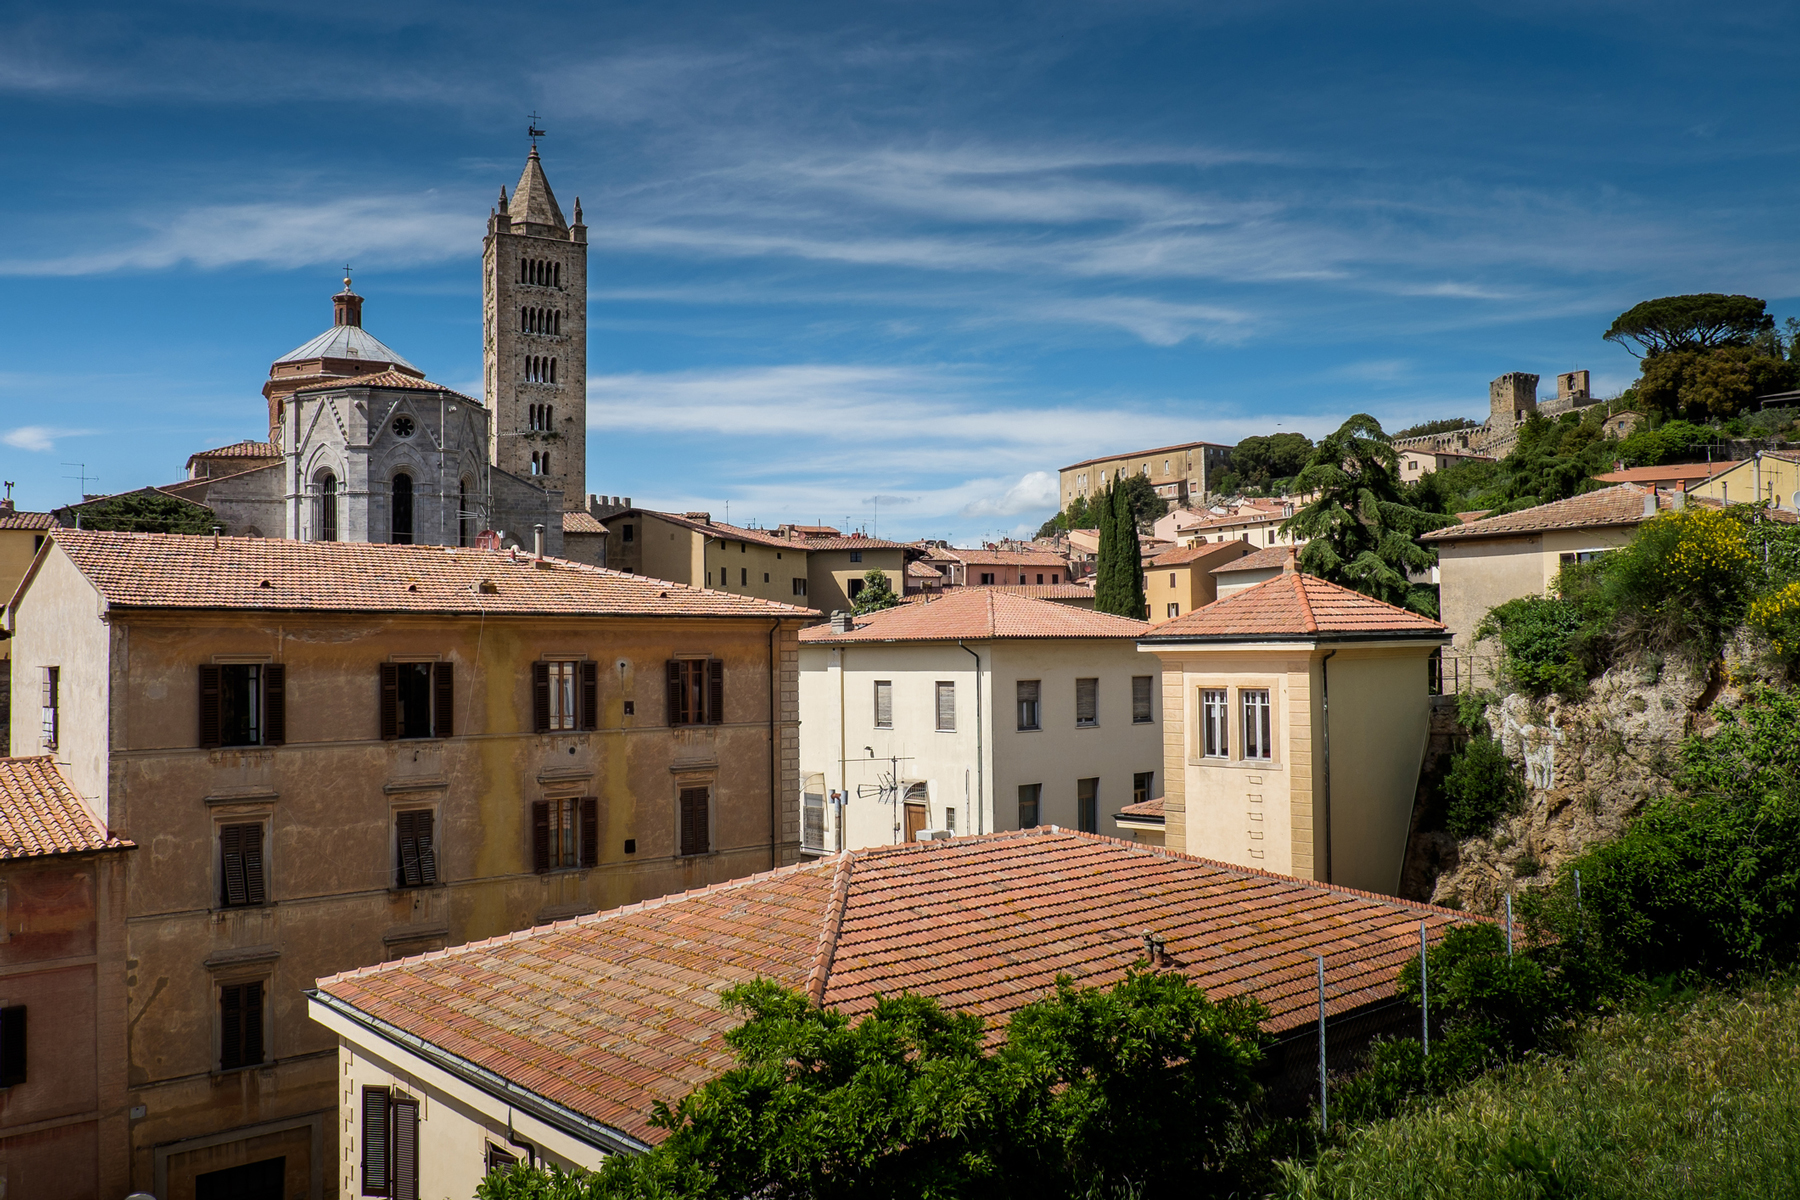 Massa Marittima, Tuscany, medieval town in Italy, the Cathedral